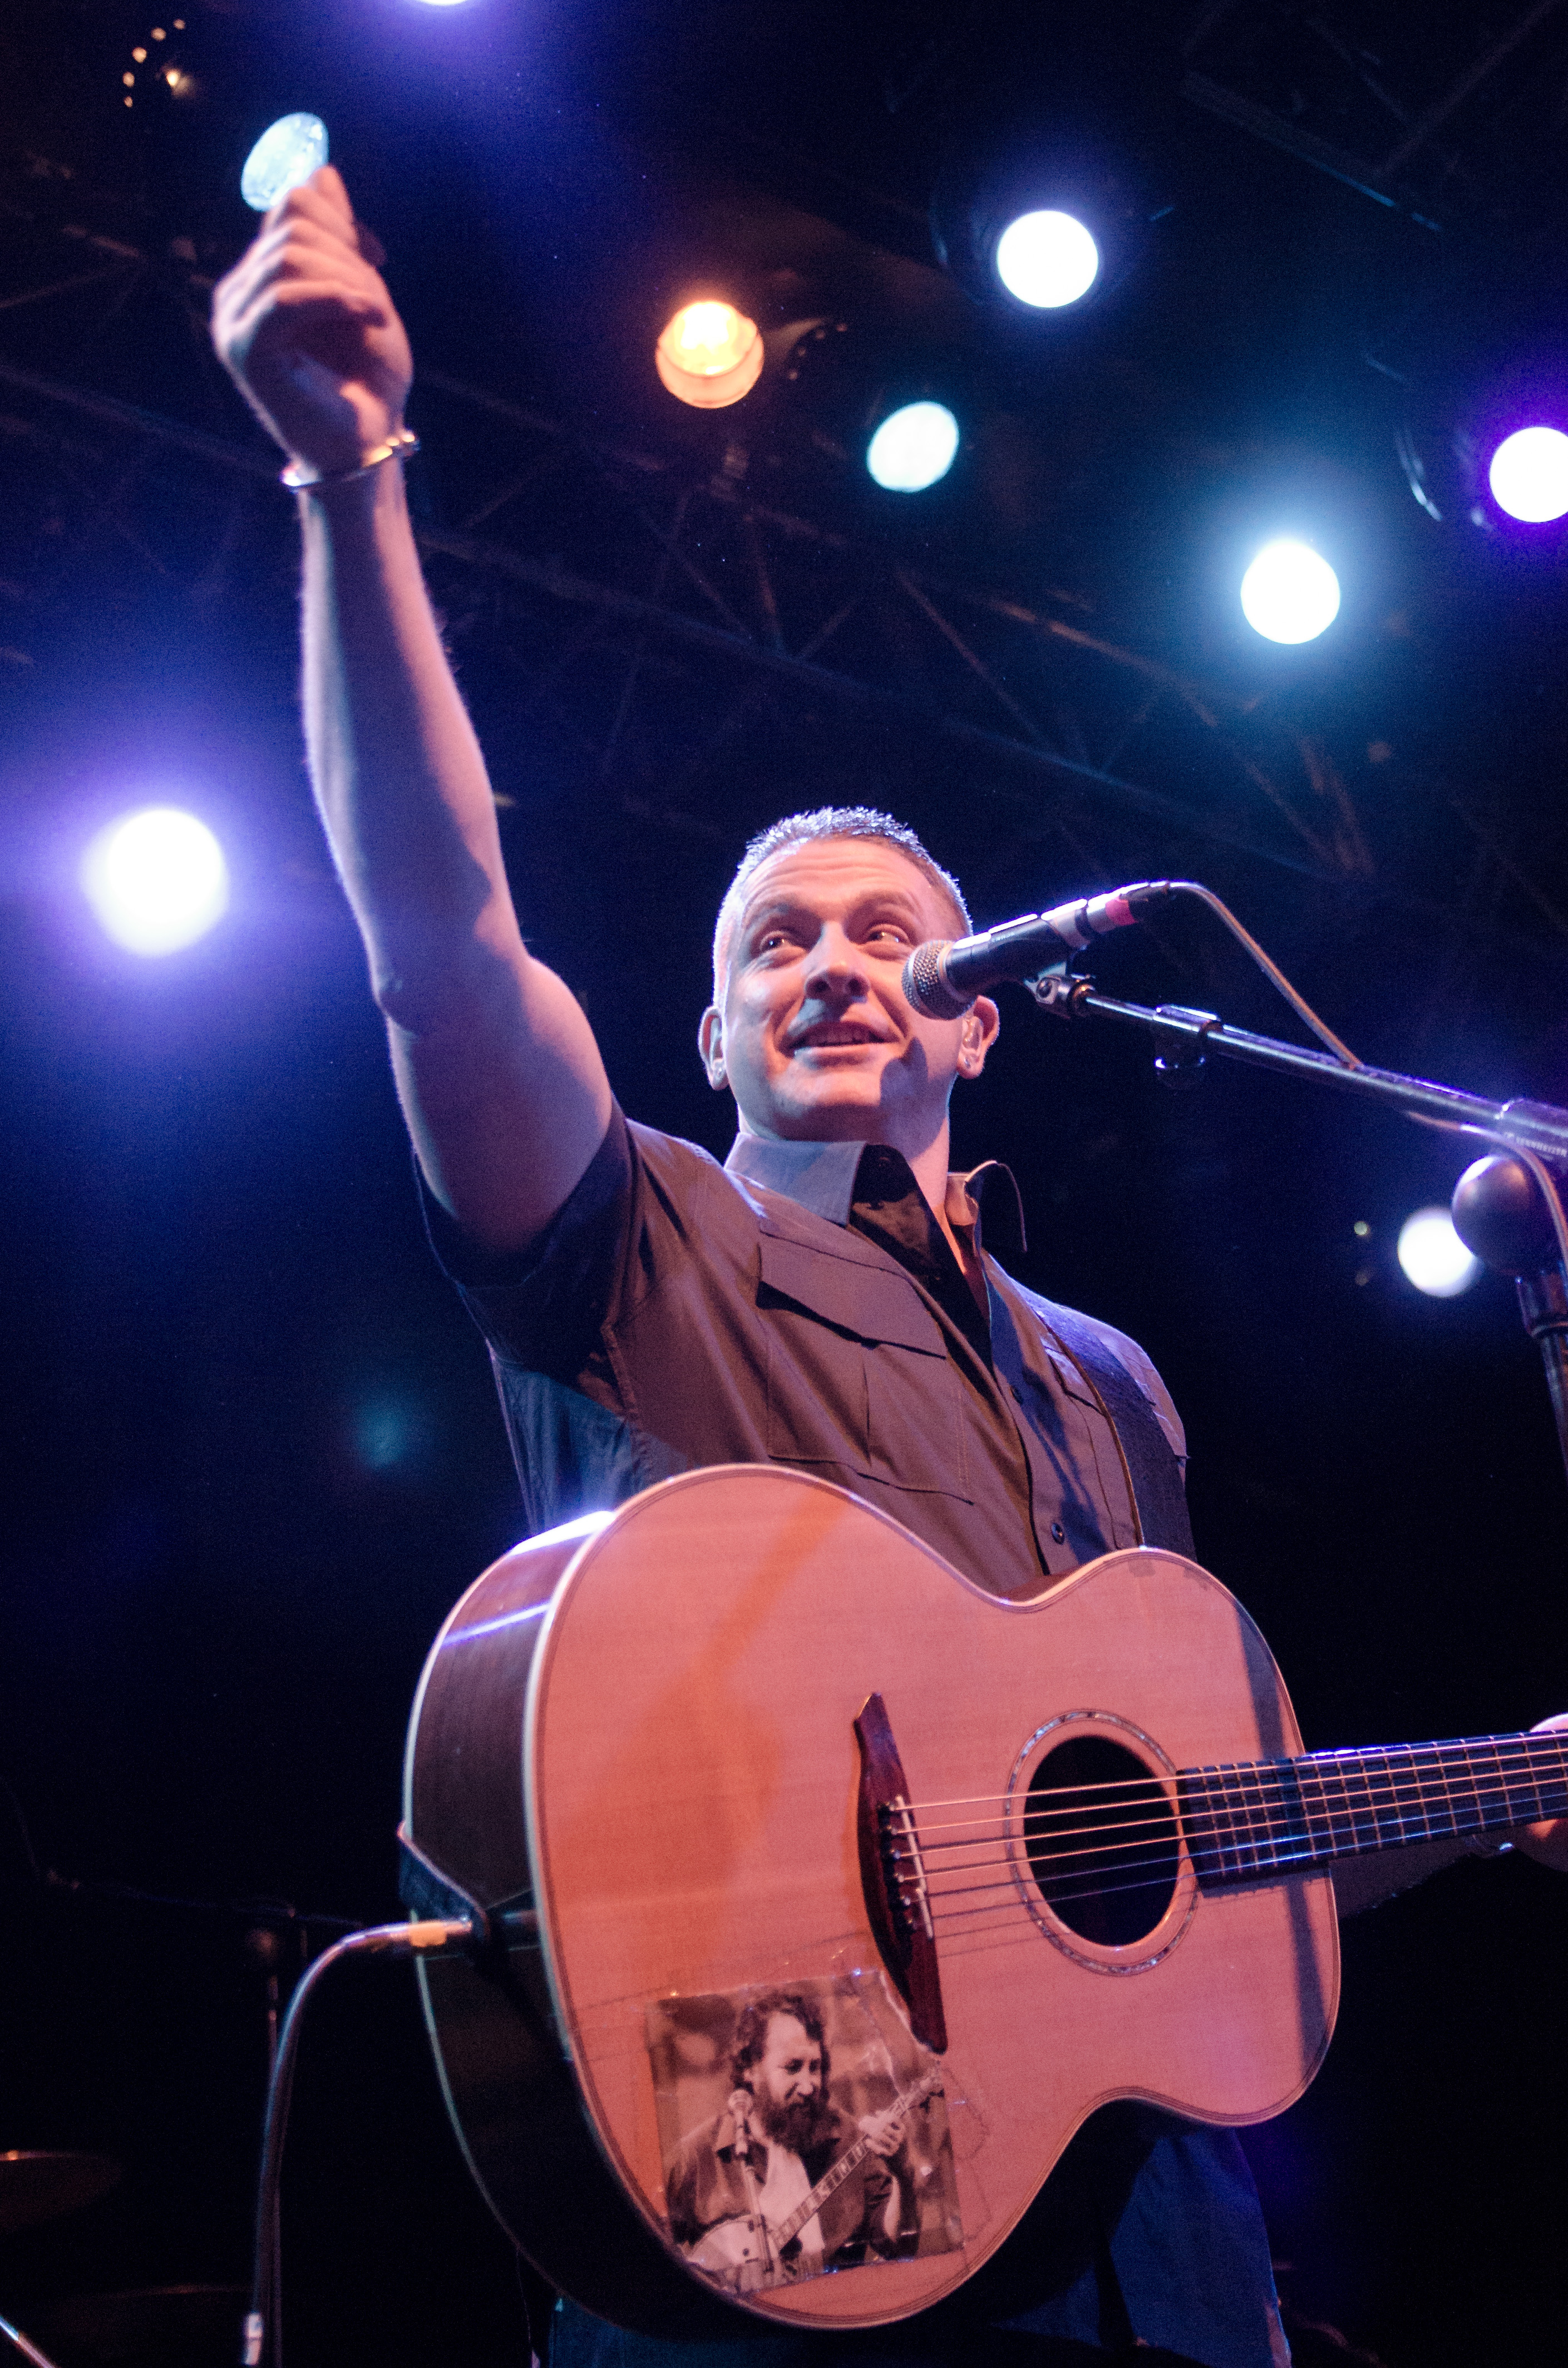 damien-dempsey-at-vicar-street-by-sean-smyth-19-12-15-16-of-34